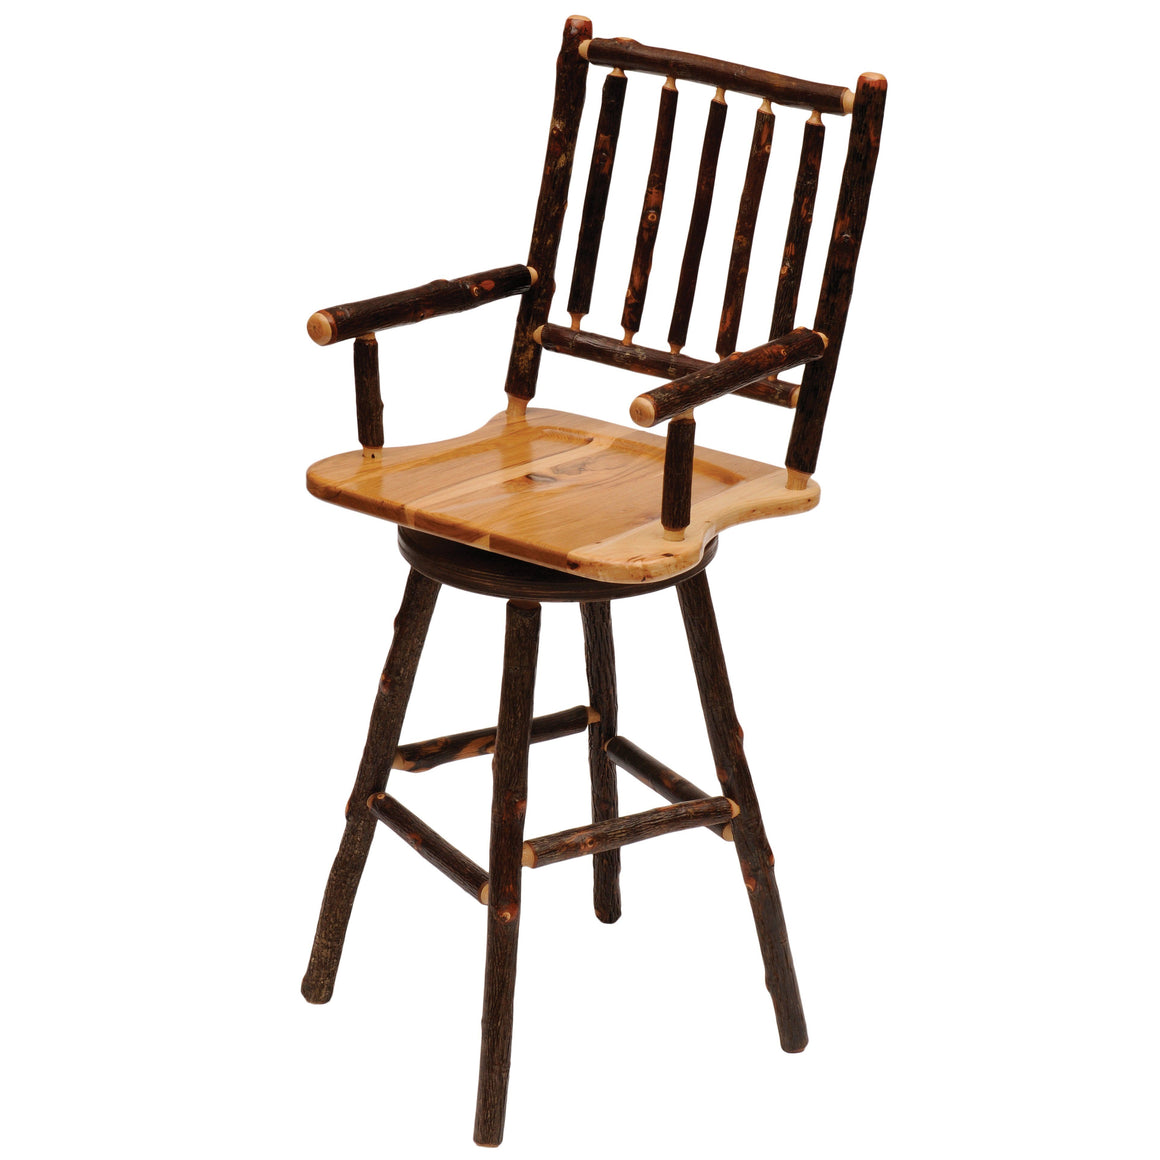 Natural Hickory Log Swivel Counter Stool with Arms - Wood Seat -24-Inch Stool Fireside Lodge Antique Oak - Wood Seat